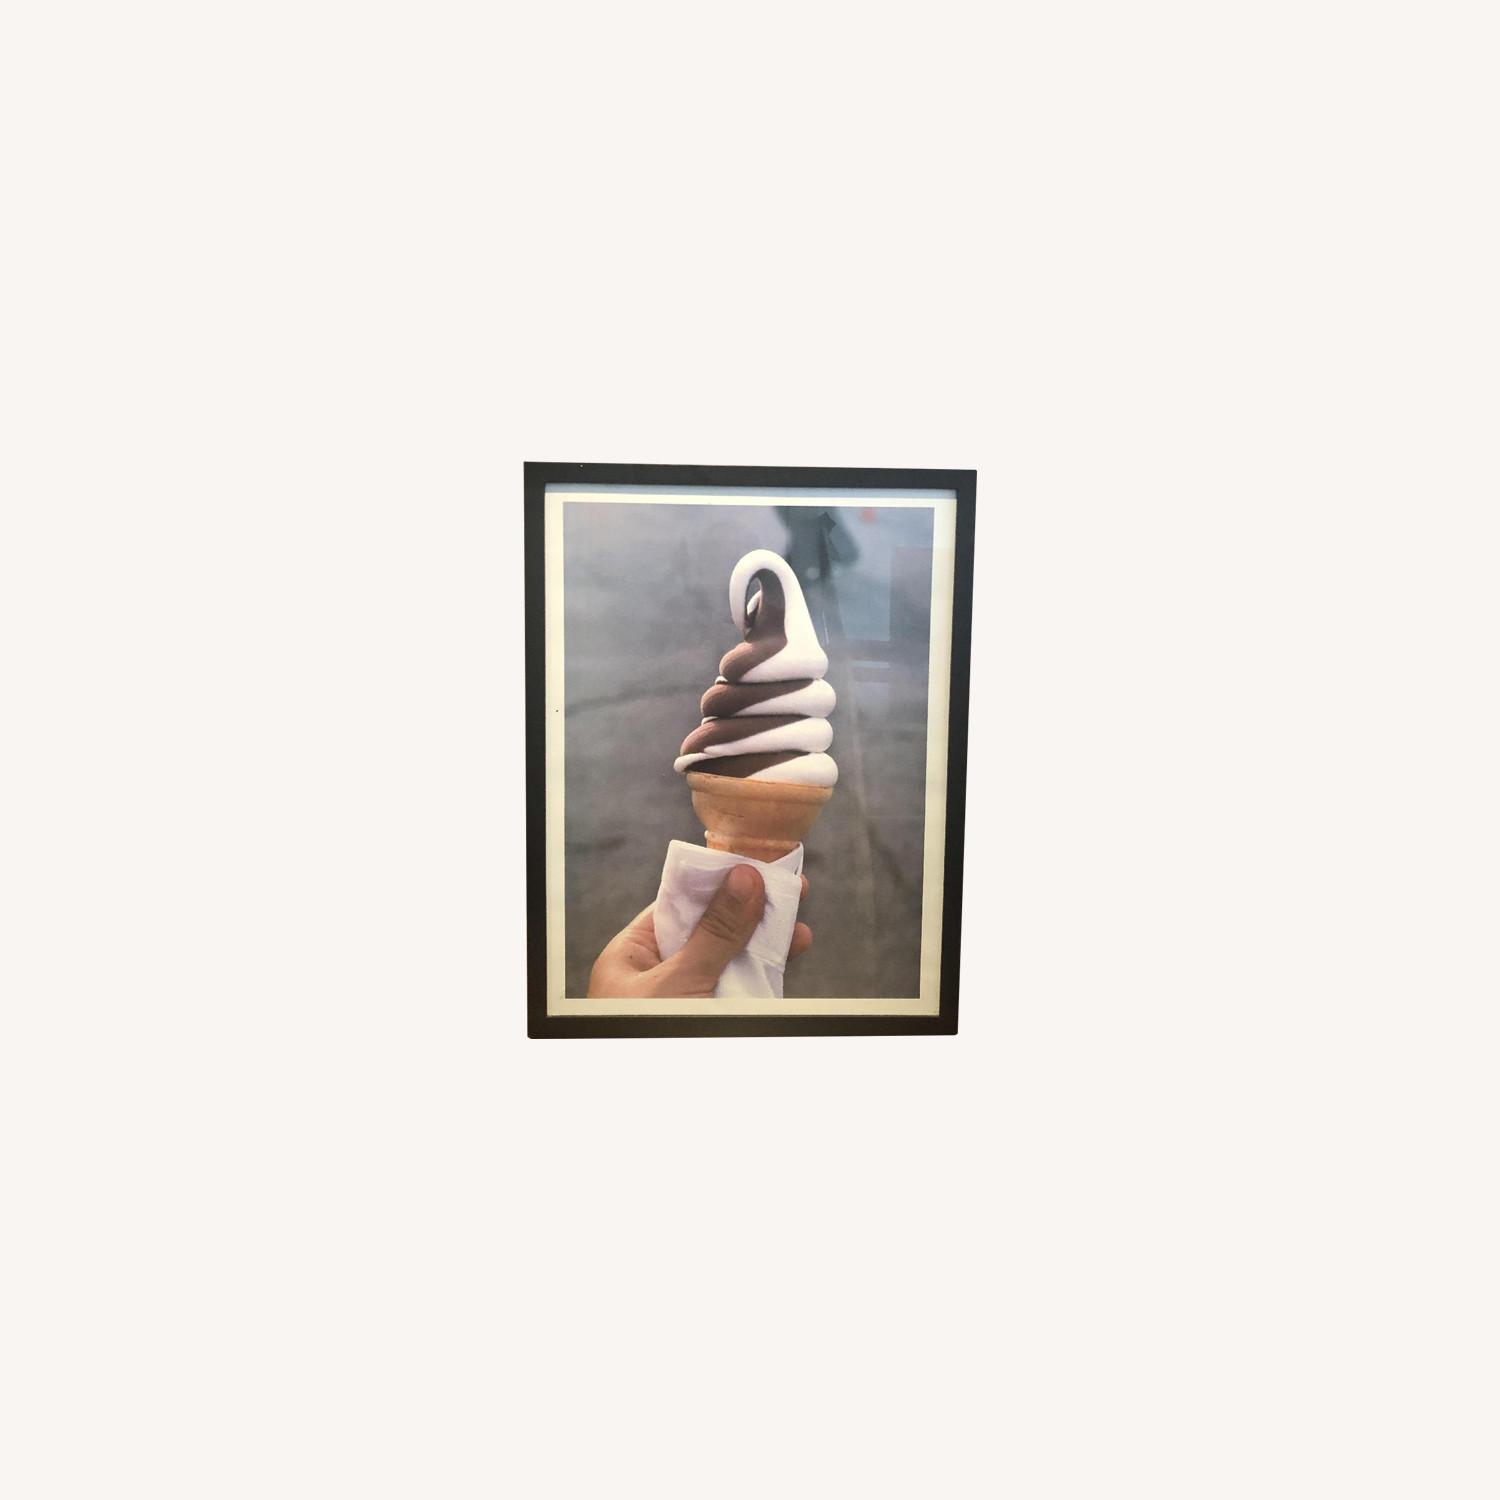 Urban Outfitters Framed Ice Cream Photo - image-0